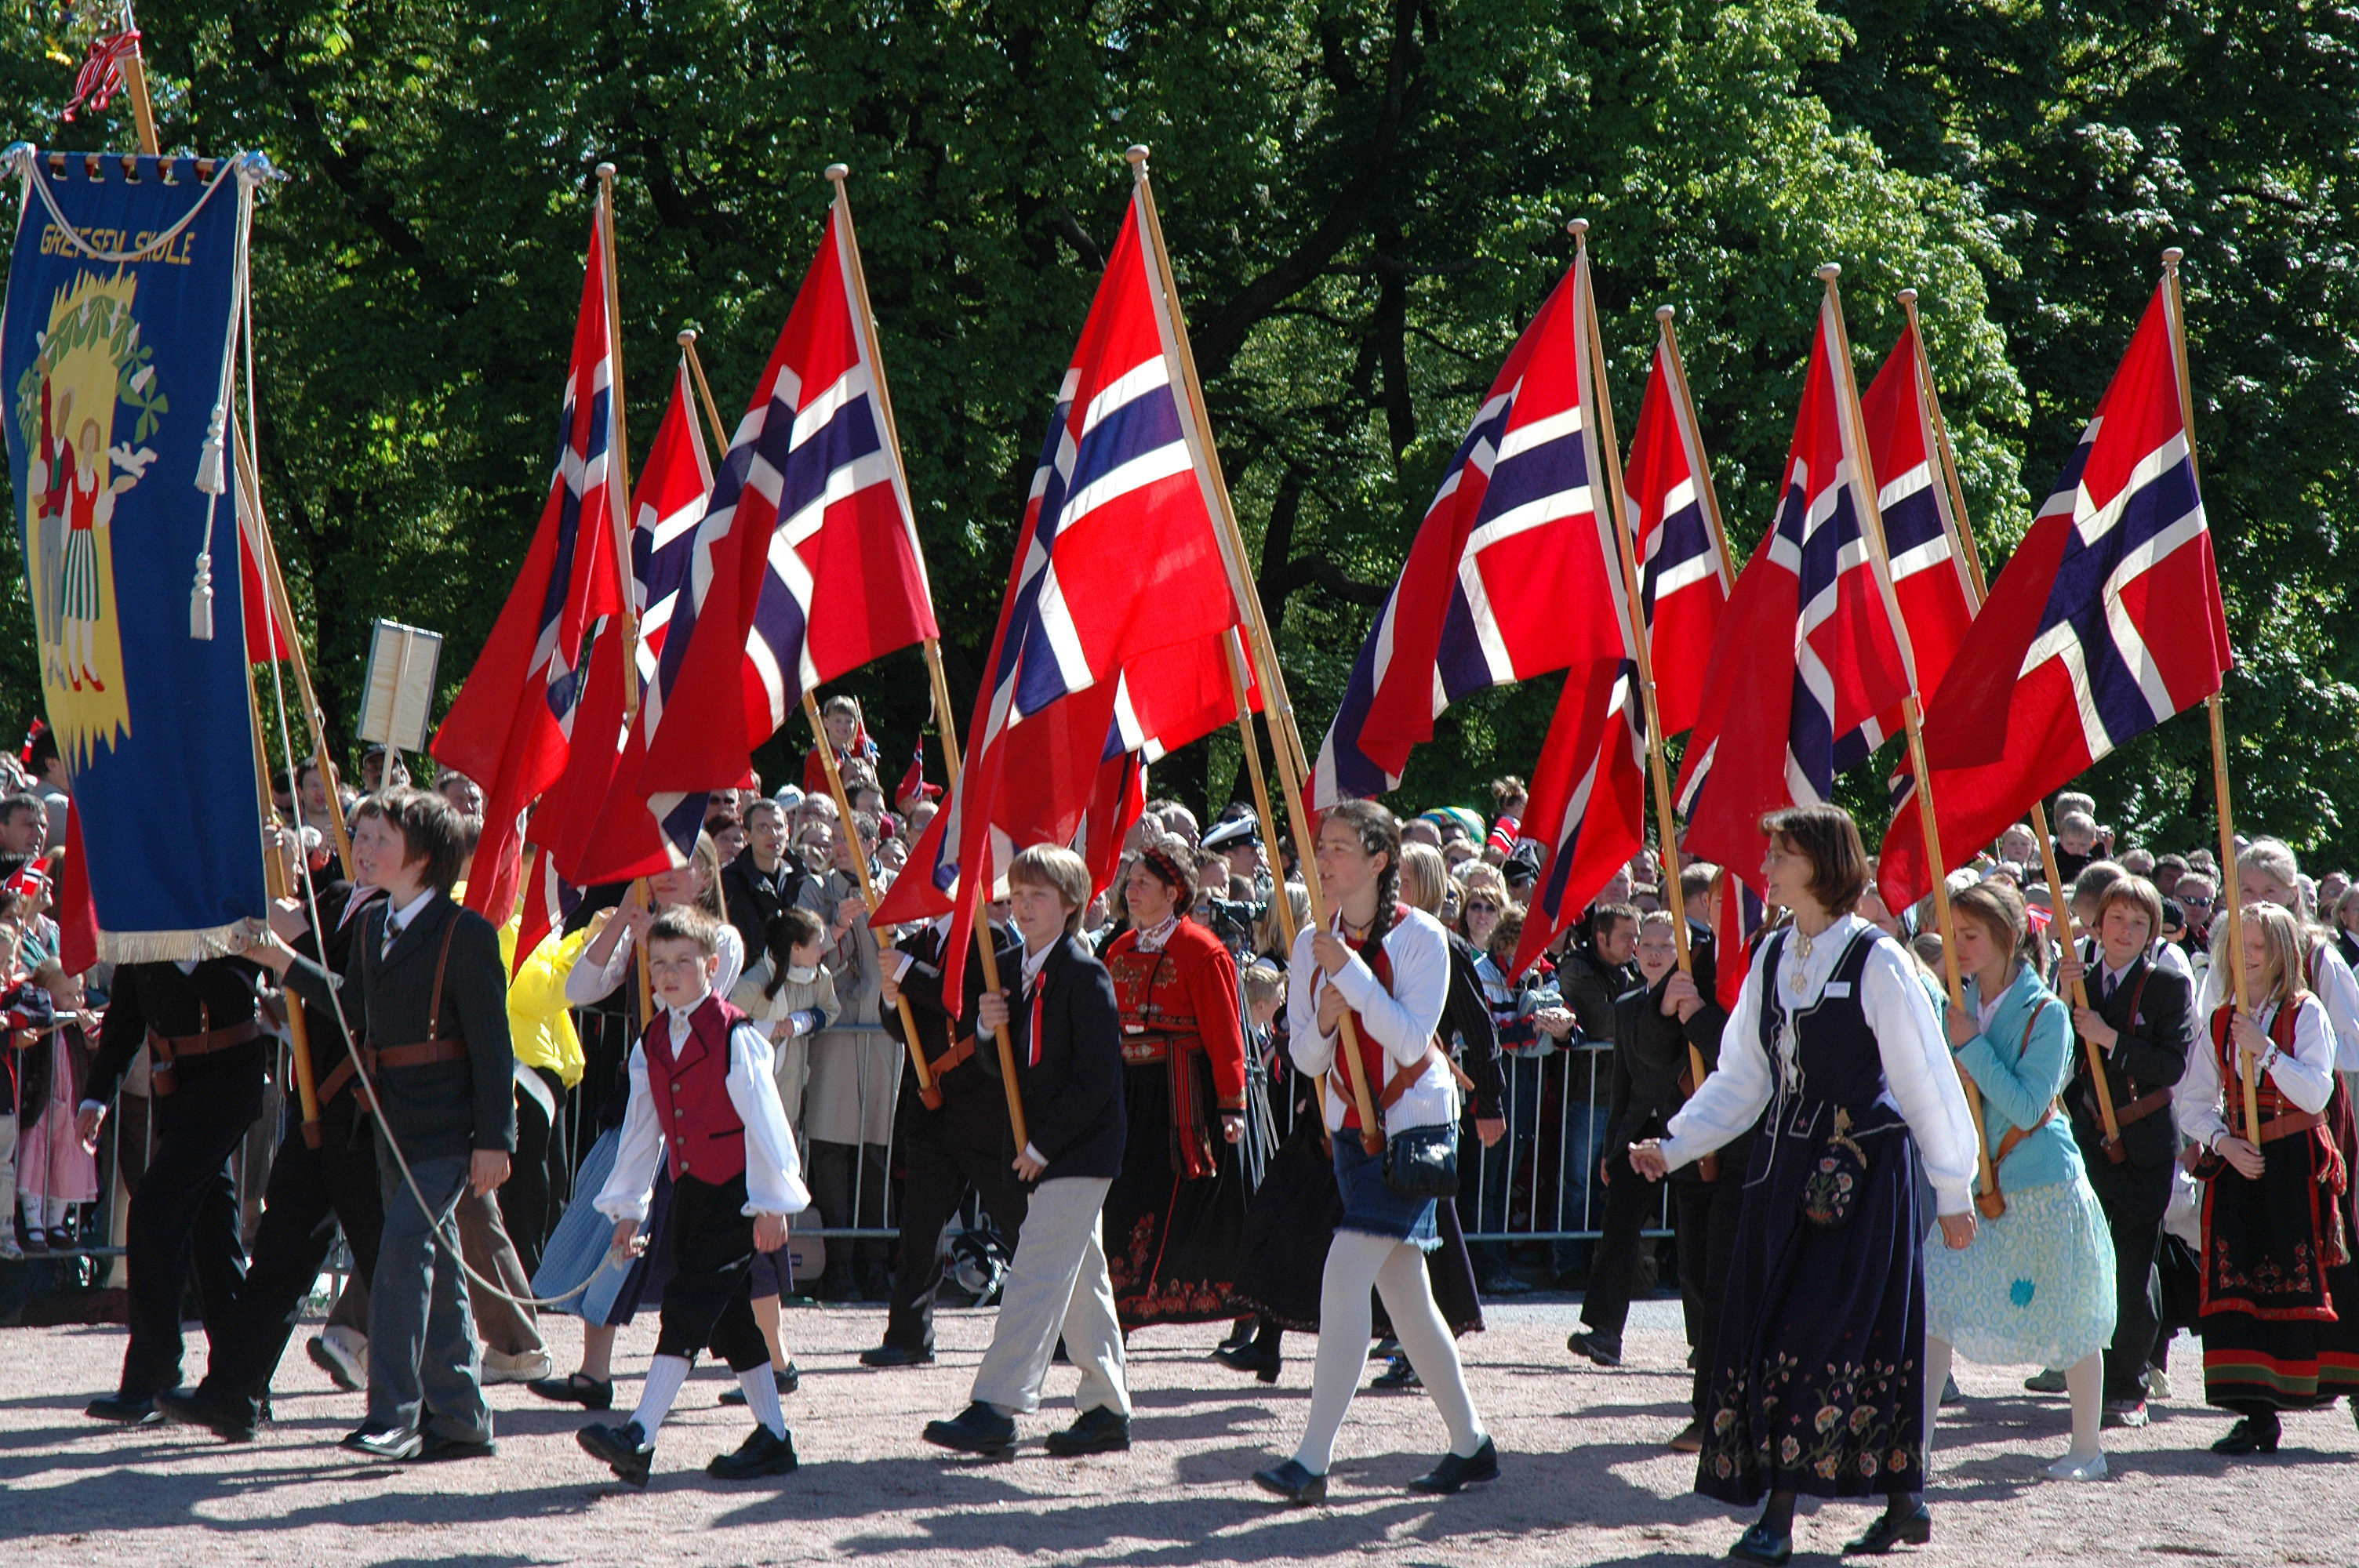 https://assets.eberhardt-travel.de/2019/Norwegen/68633_Oslo__Kinderparade_am_Nationalfeiertag_Original.jpg